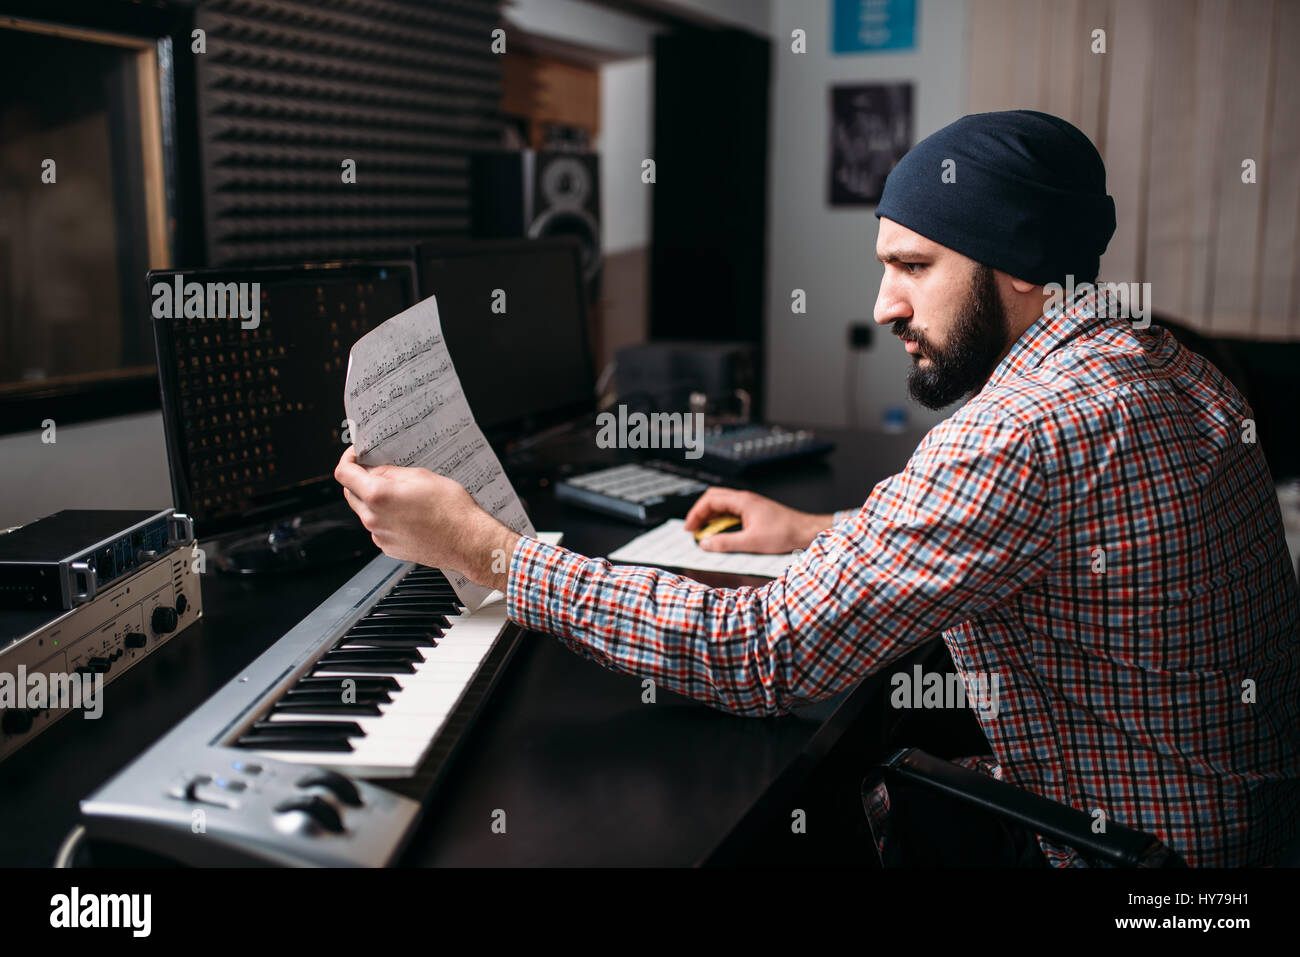 Audio engineering, sound producer work with synthesizer in studio. Professional digital media technology - Stock Image